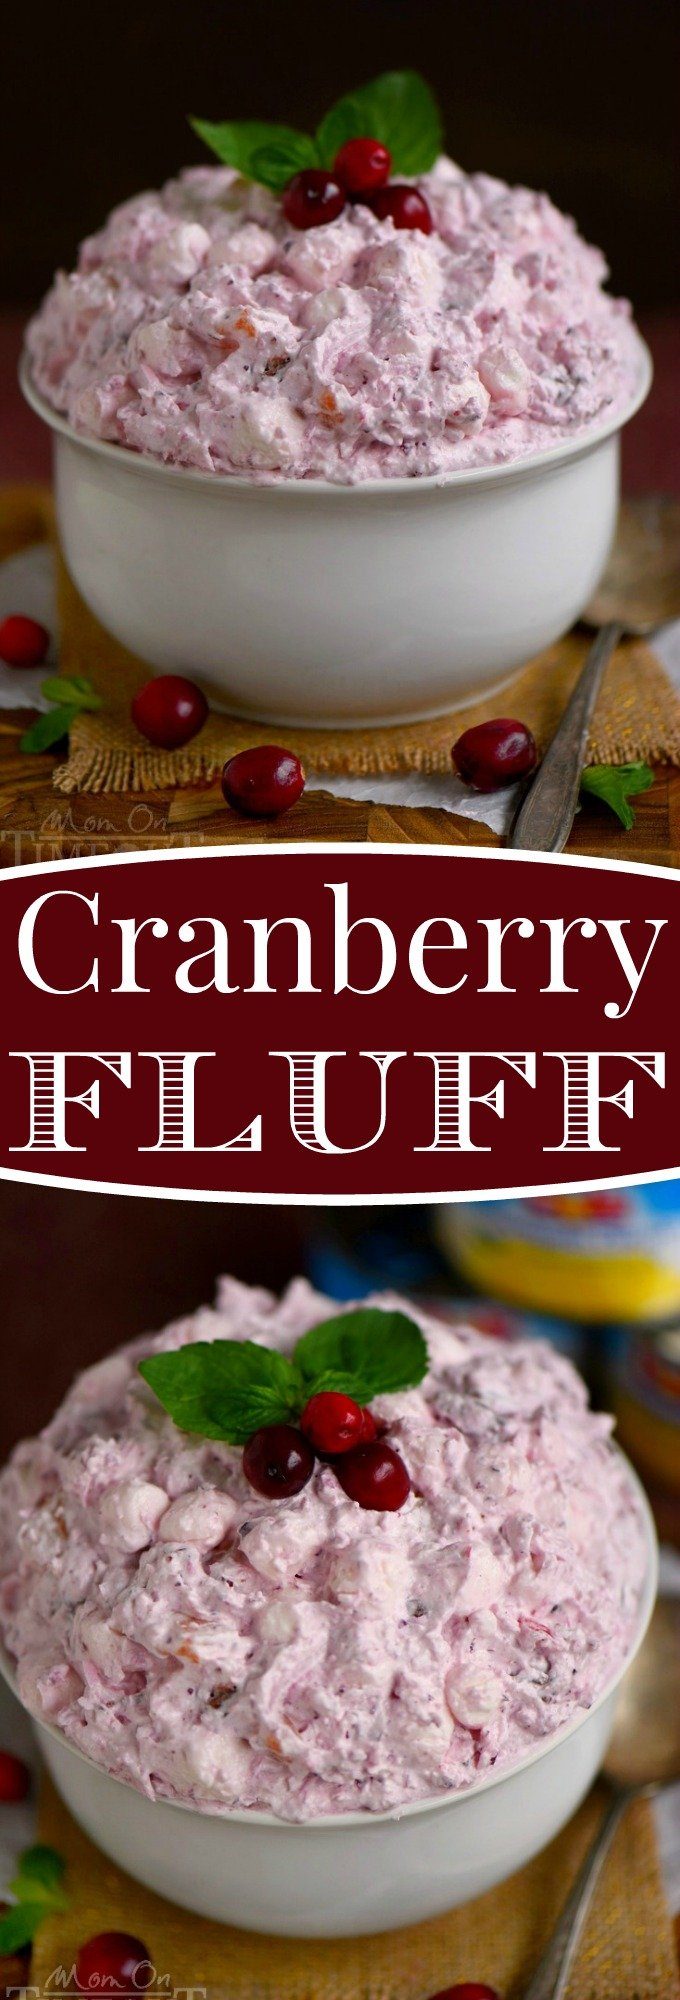 What your holiday table is missing! This Easy Cranberry Fluff is an amazing dessert salad made with cranberries, pineapples, coconut and marshmallows. No one can resist this beautiful and scrumptious dessert! // Mom On Timeout #holiday #recipe #Thanksgiving #Christmas #dessert #salad #cranberry #fluff #easy #MomOnTimeout #ad